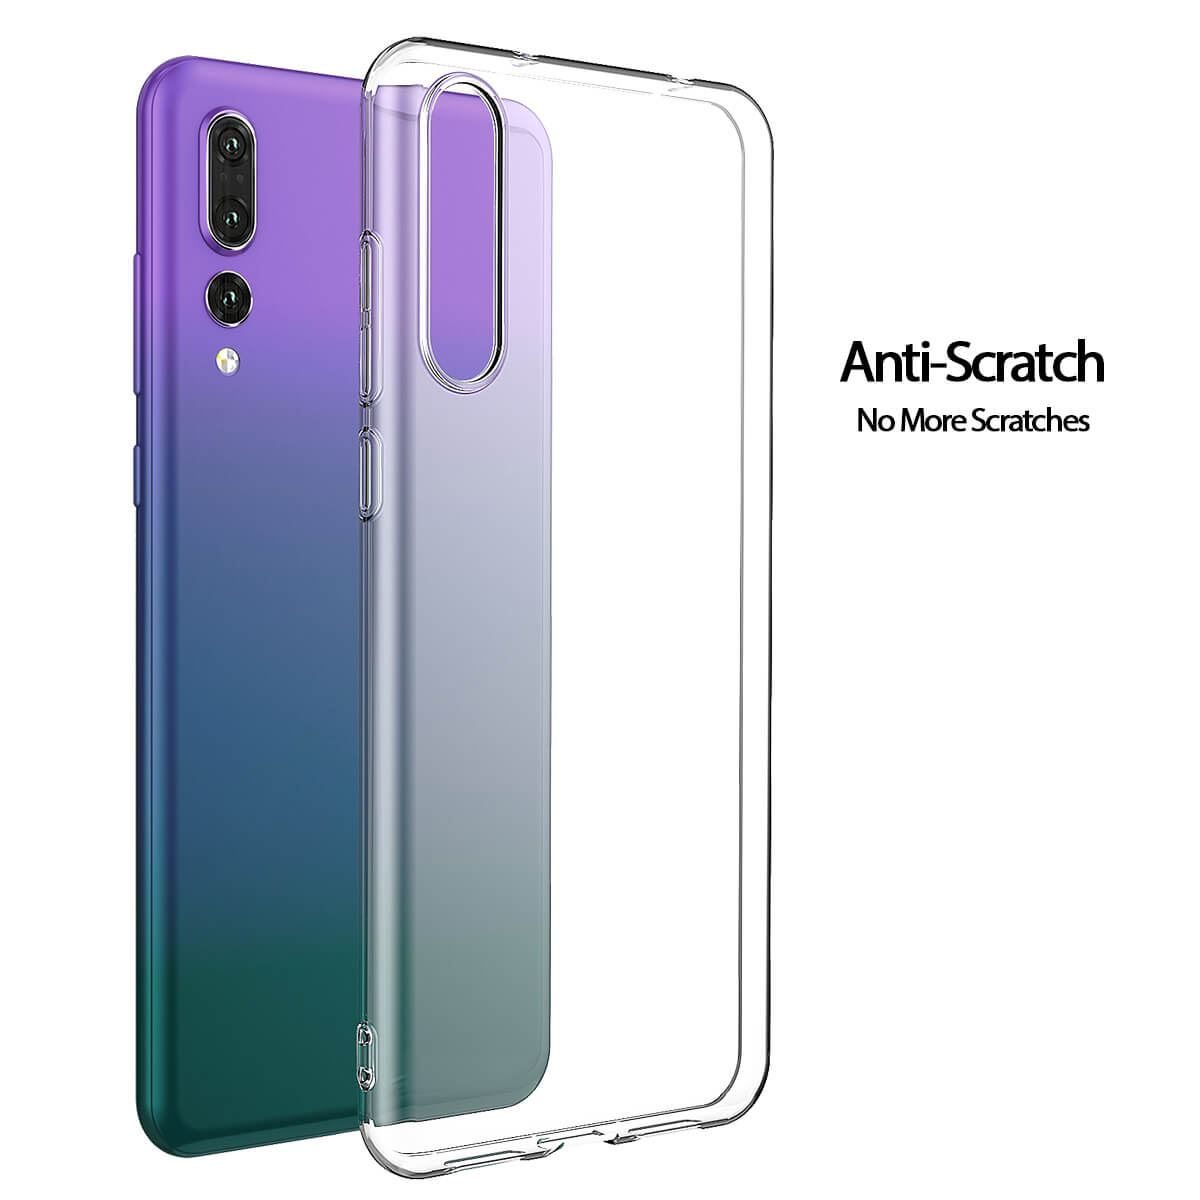 Shockproof-Silicone-Protective-Clear-Gel-Cover-Case-For-Huawei-P20-Pro-P-Smart thumbnail 52